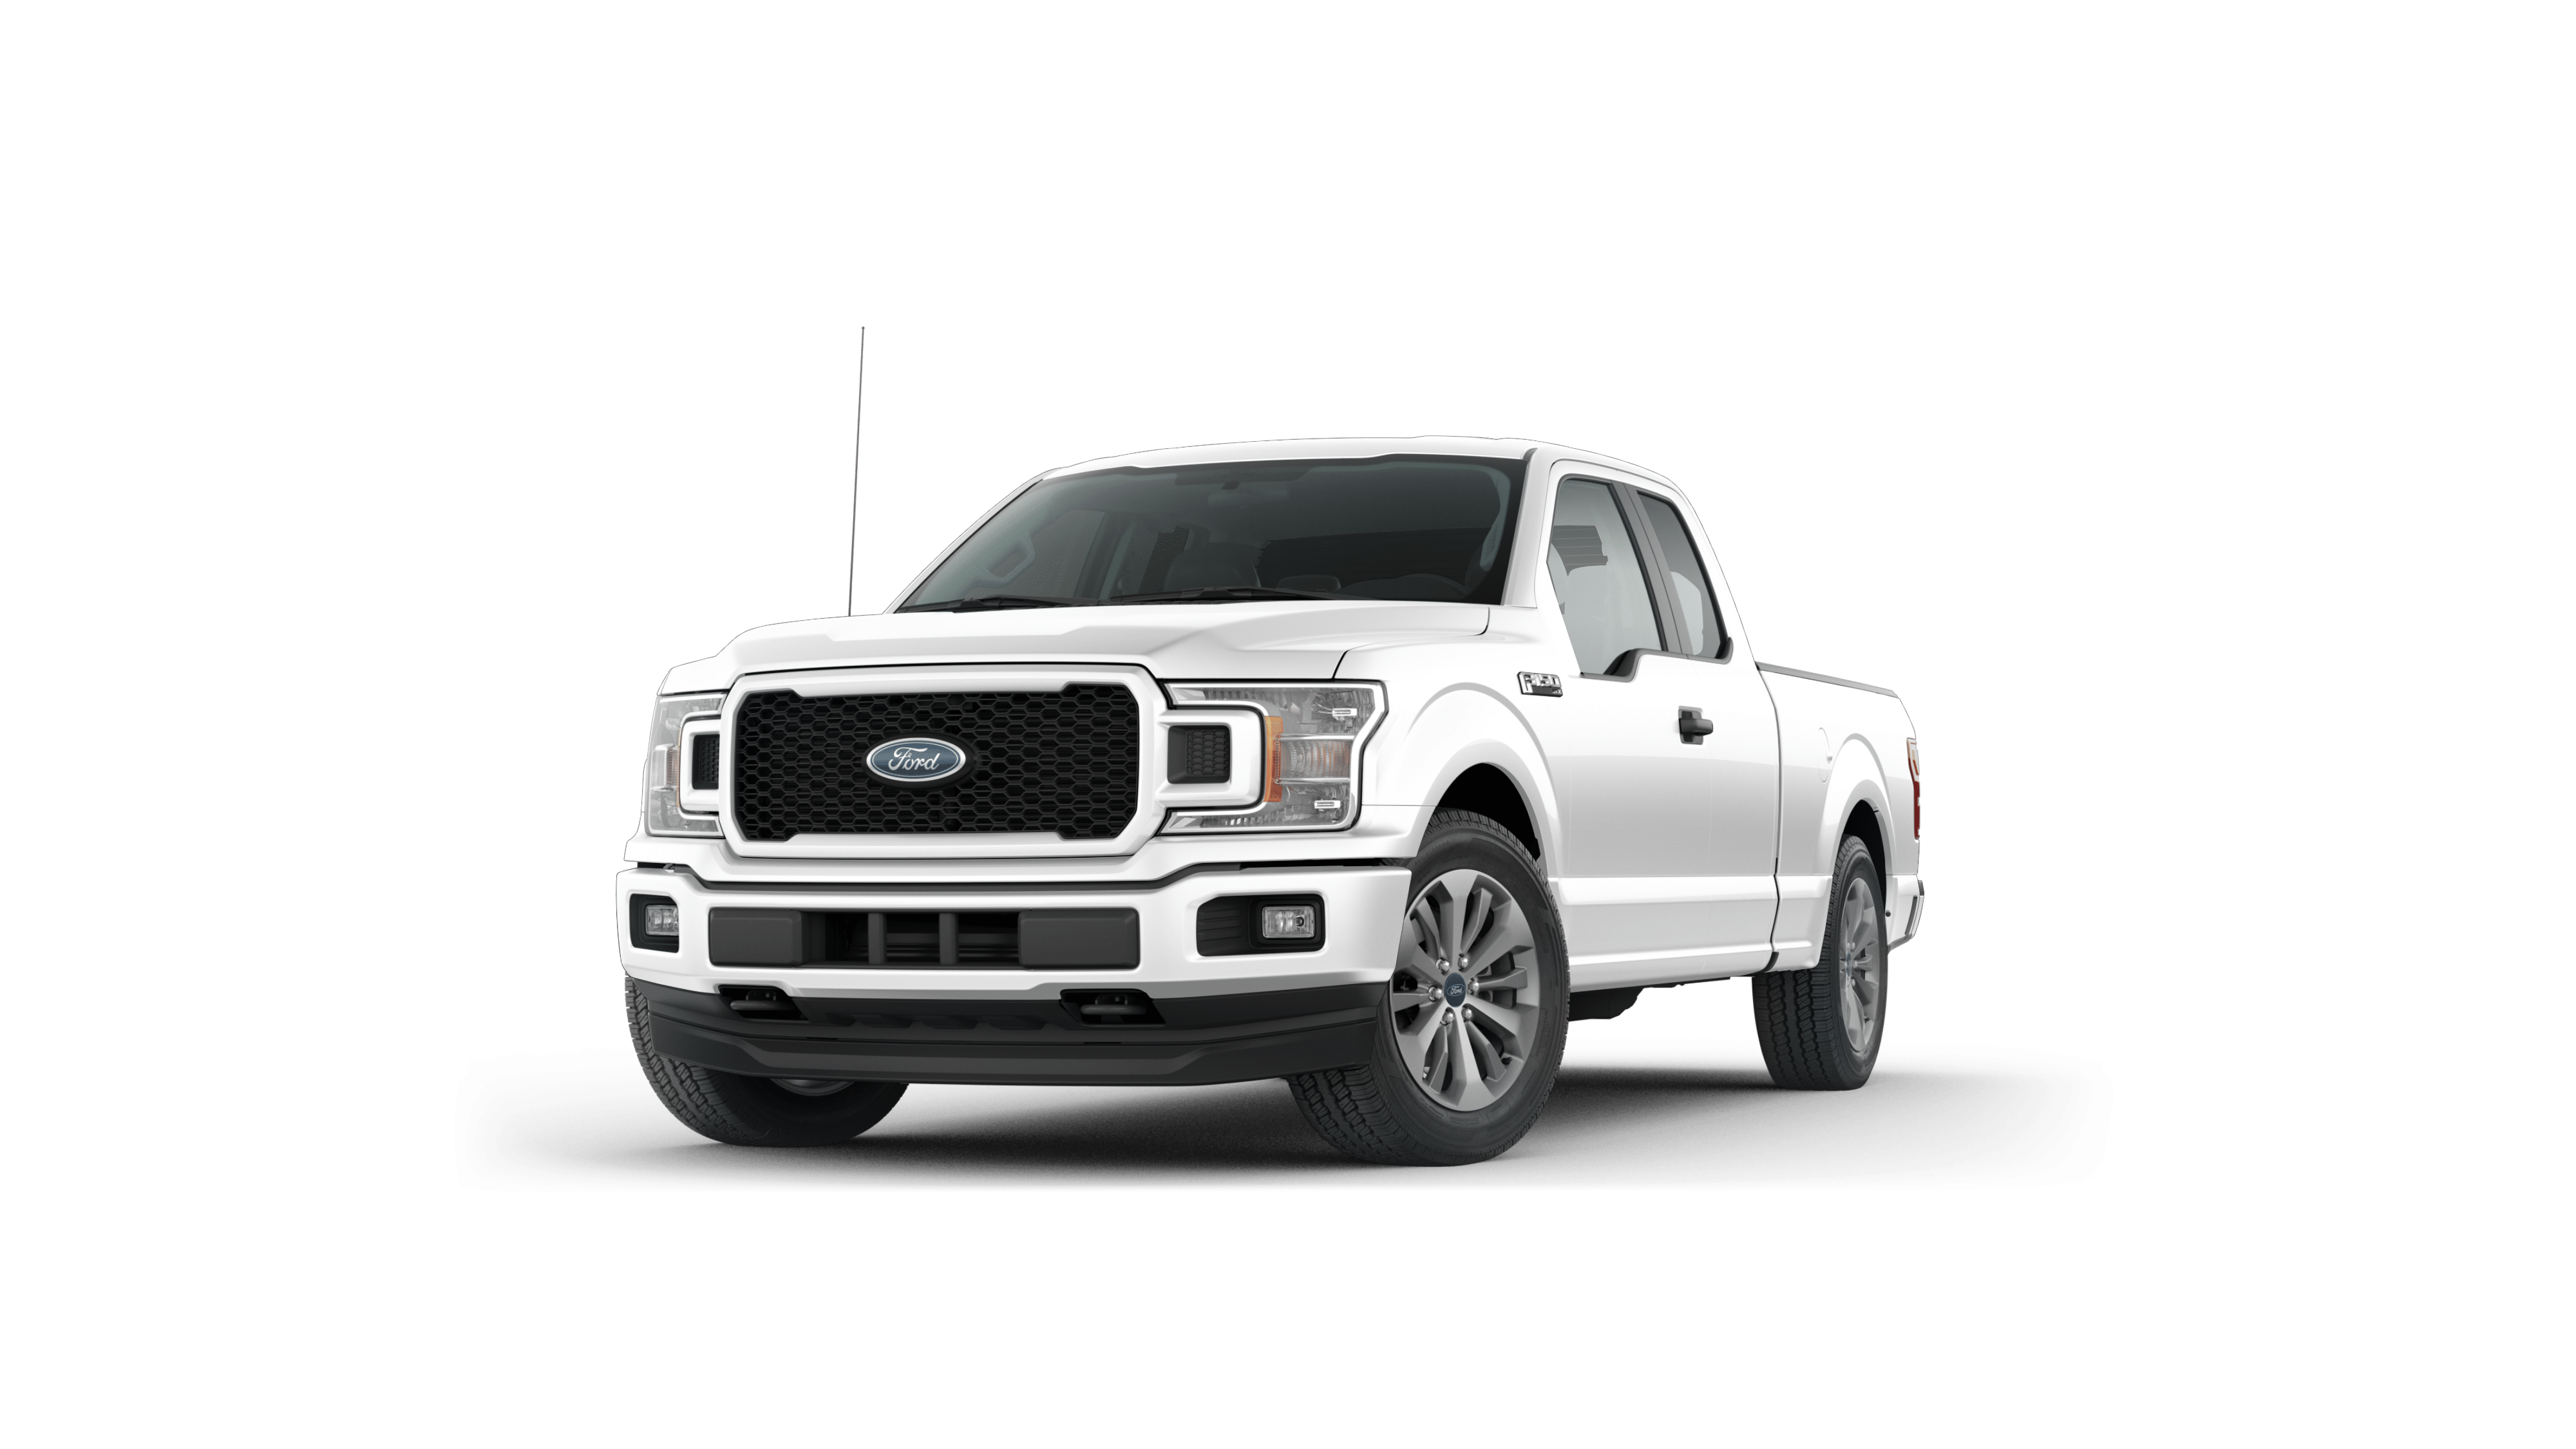 Rod Baker Ford Sales Inc Is A Dealer Selling New And Used Cars Location Of Fuel Filter On 2012 650 2018 Vehicles